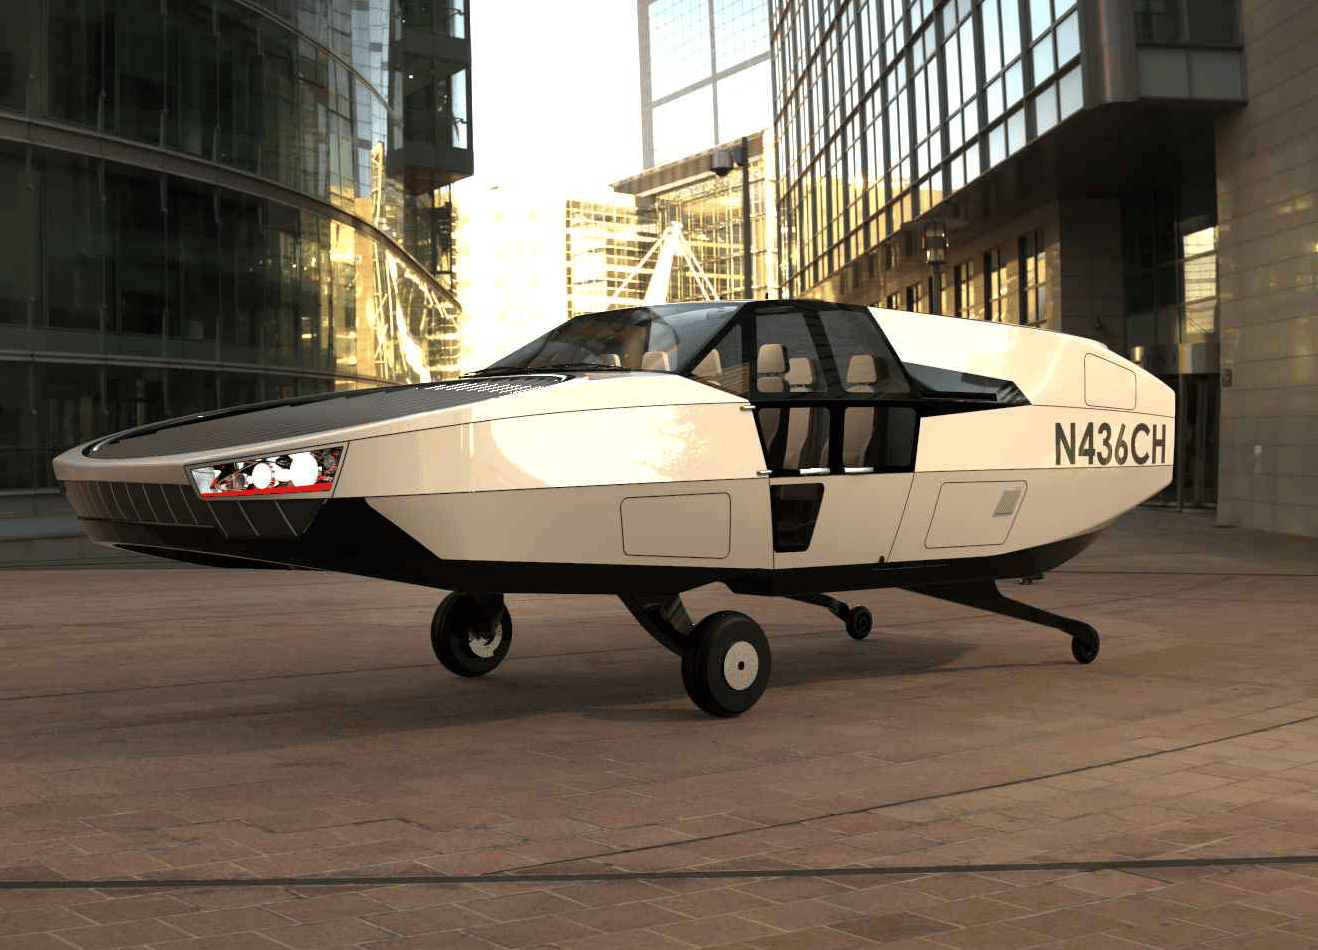 Urban Aeronautics has announced that its remarkable CityHawk VTOL air taxi will move to a zero-emissions hydrogen powertrain, in partnership with HyPoint